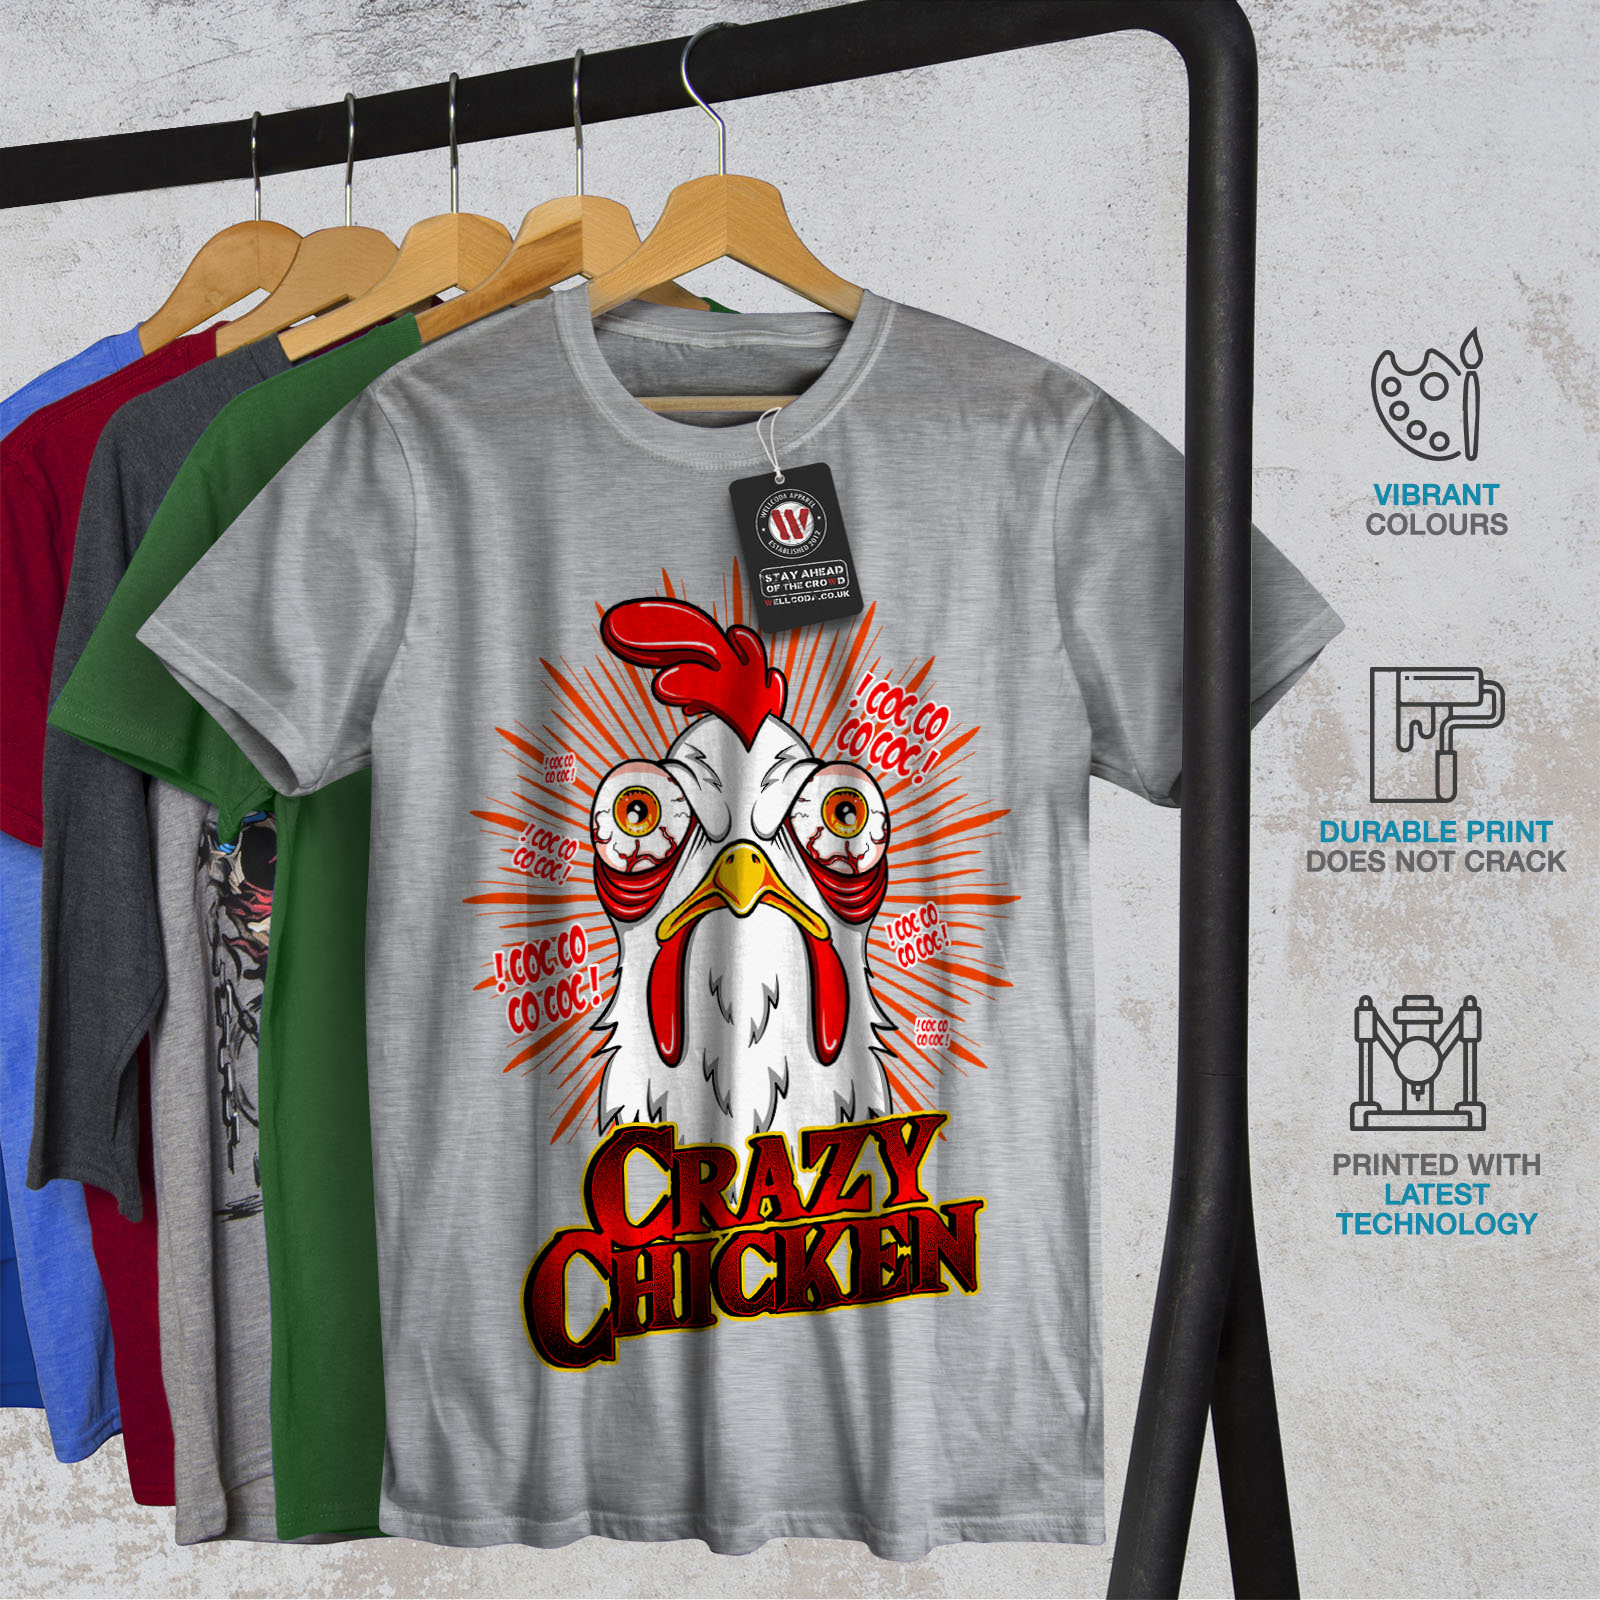 thumbnail 18 - Wellcoda-Crazy-Chicken-Mens-T-shirt-Funny-Face-Graphic-Design-Printed-Tee